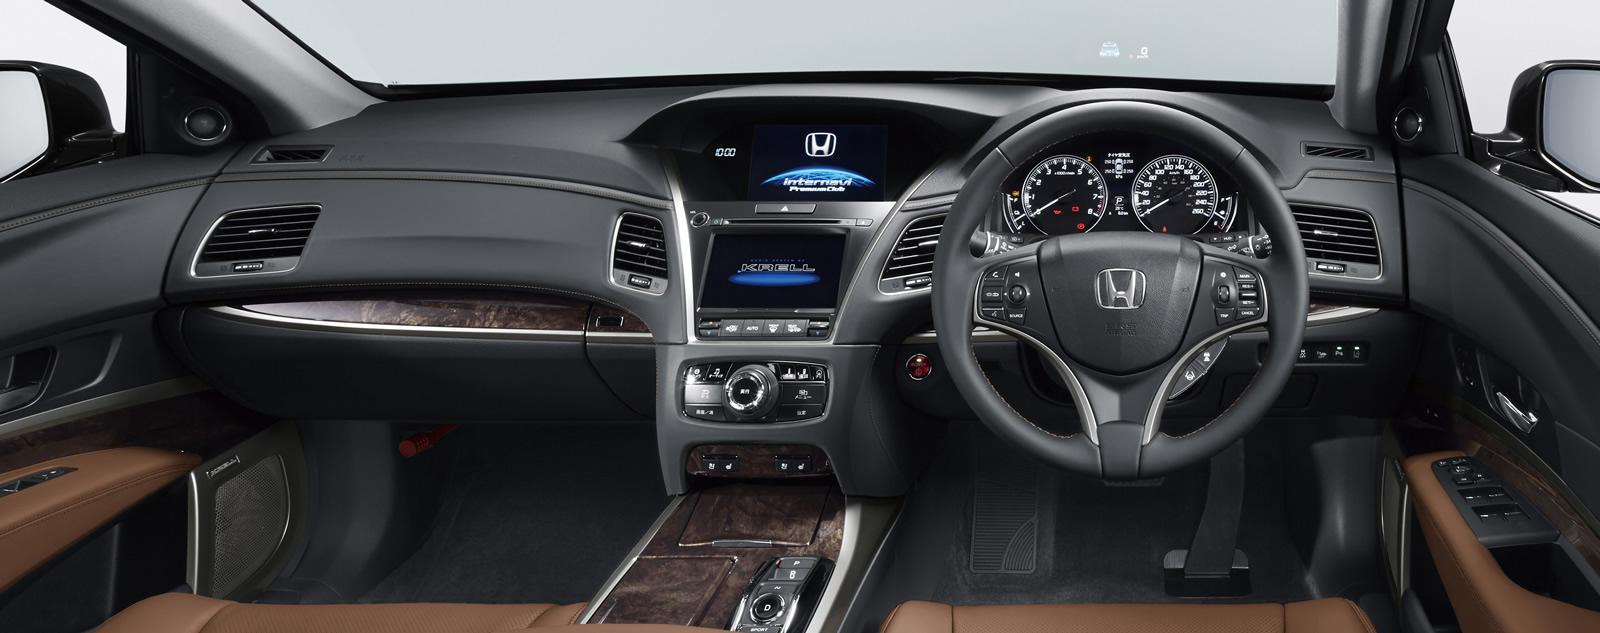 2015 Honda Legend Flagship Sedan Revealed in Japan: It's the Acura RLX ...